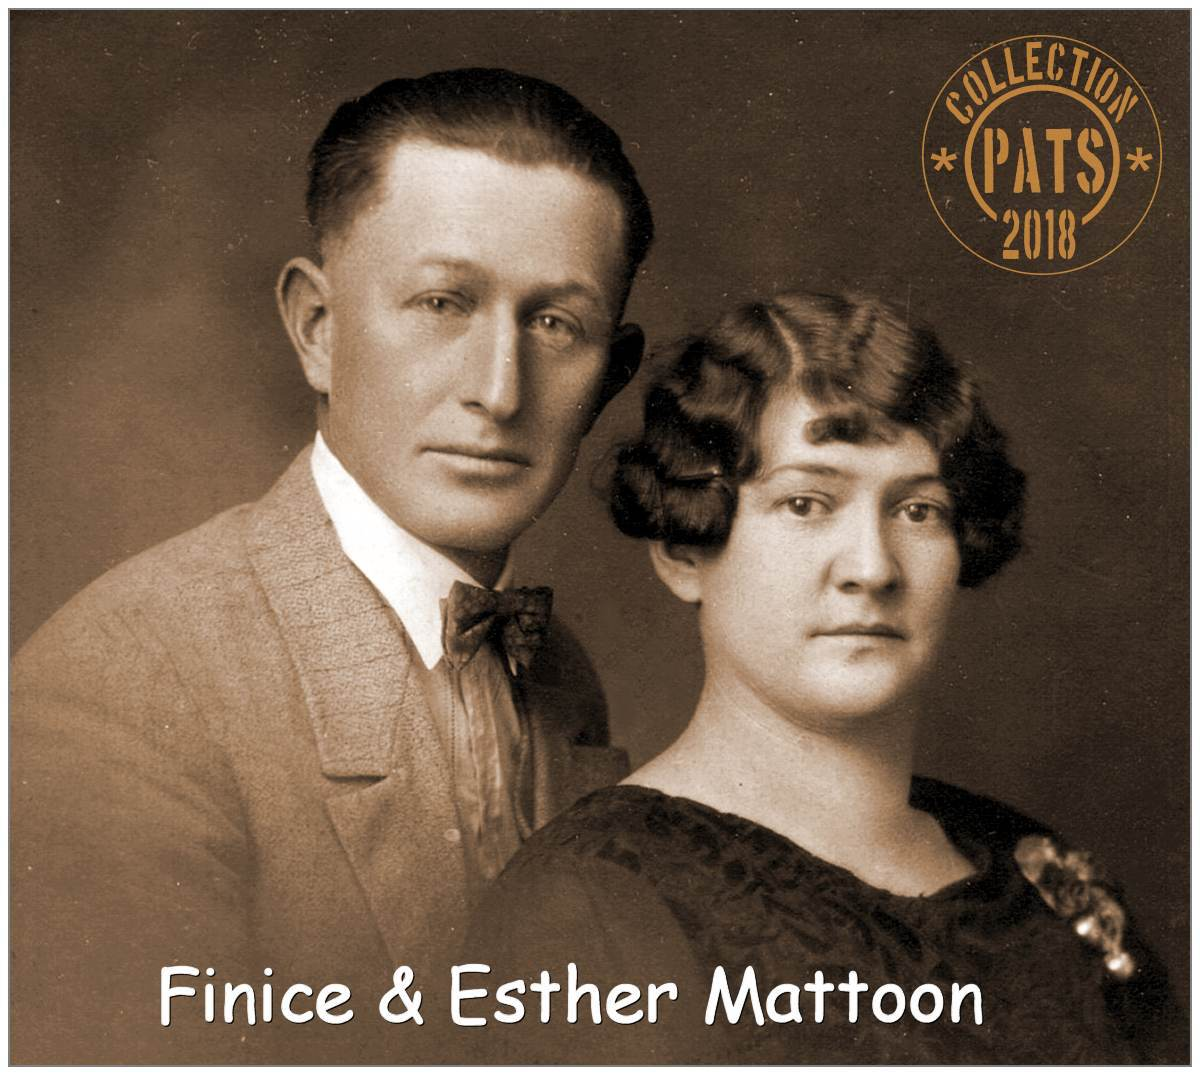 Parents - Finice and Esther Mattoon